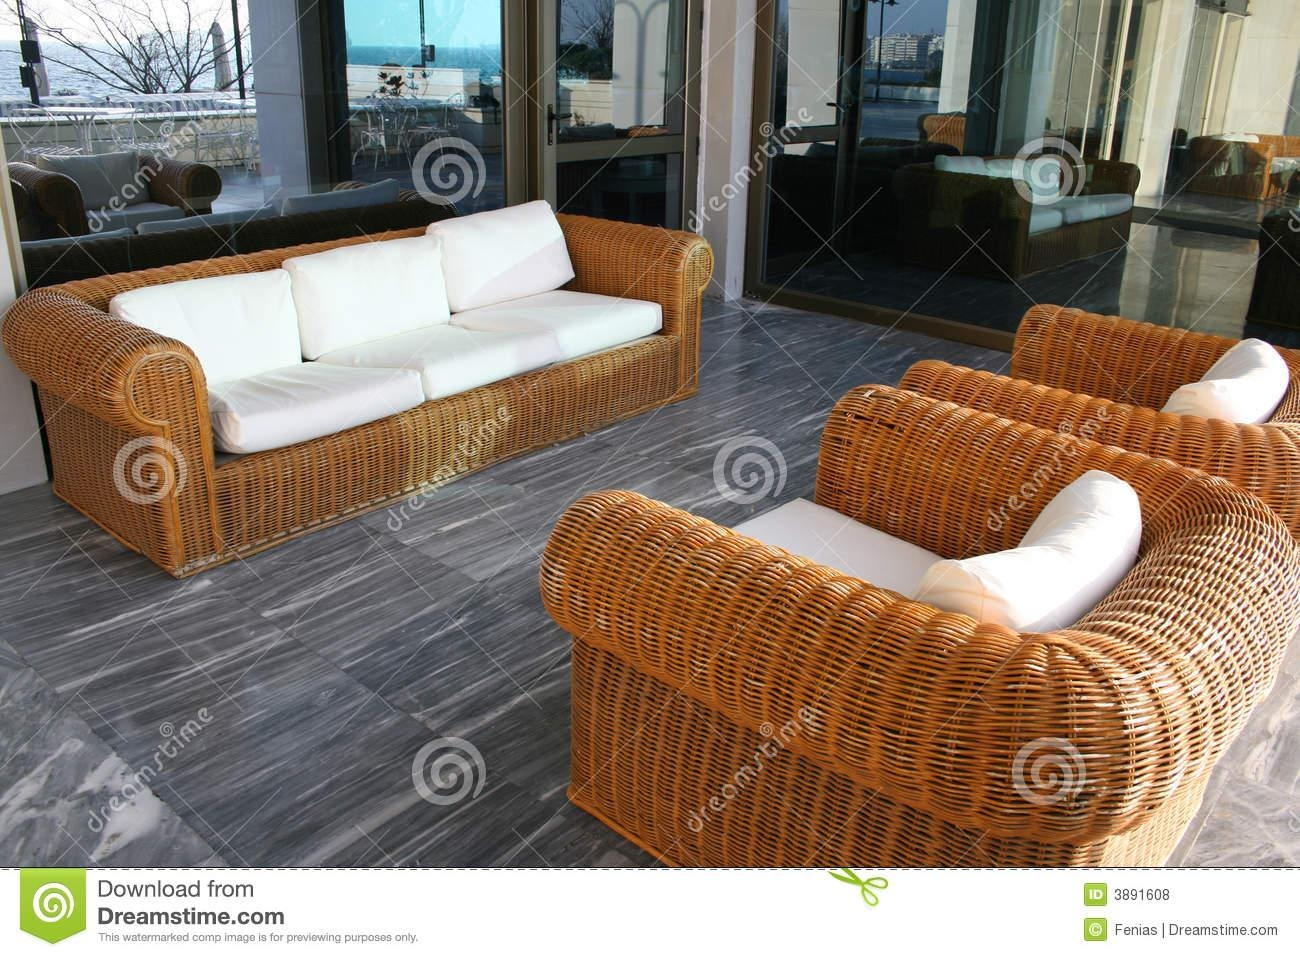 Bamboo Sofa Royalty Free Stock Photos – Image: 3891608 With Regard To Bambo Sofas (View 6 of 22)